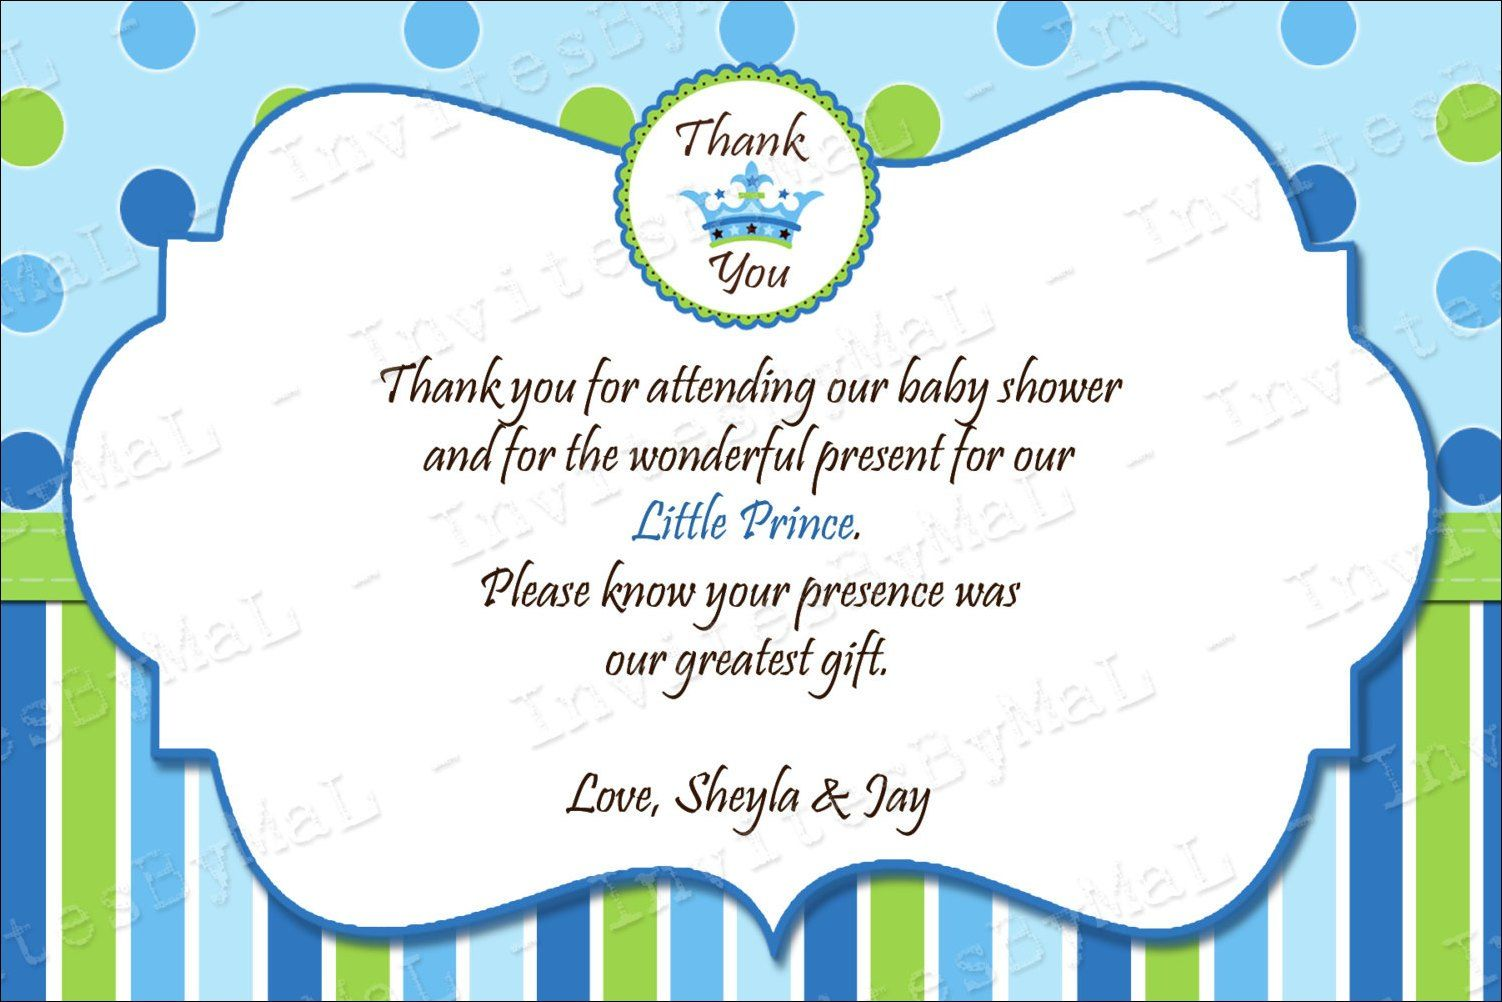 40 beautiful baby shower thank you cards ideas